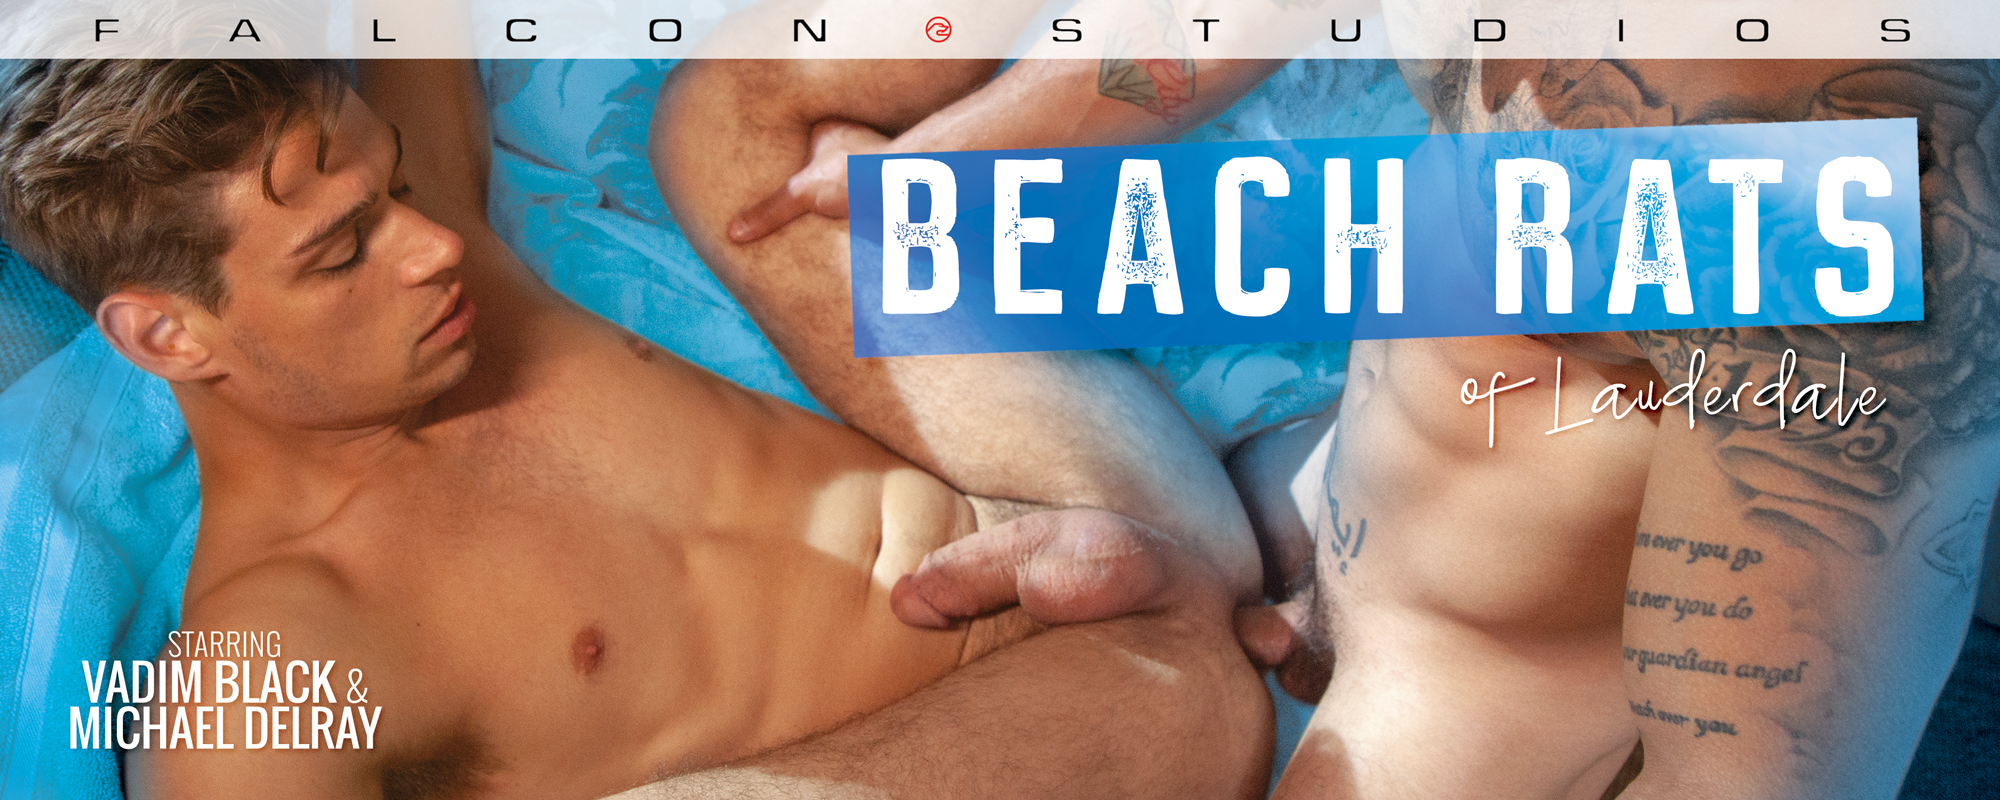 Beach Rats of Lauderdale, Scene 3 Featuring Michael Delray and Vadim Black